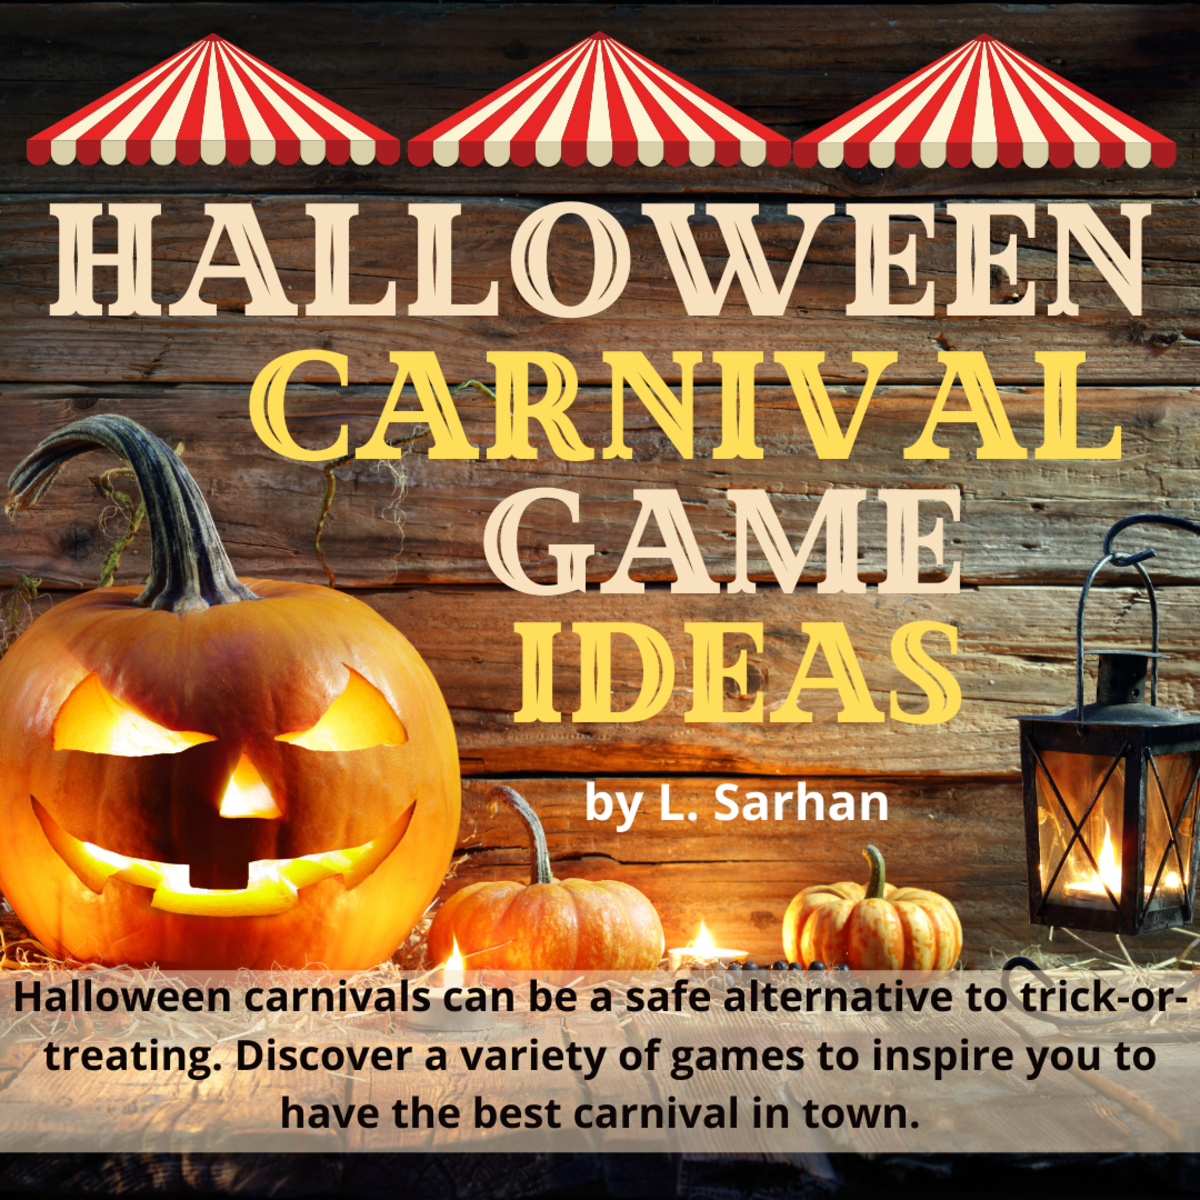 Halloween carnivals can be a safe alternative to trick or treating. Discover a variety of games to inspire you to have the best carnival in town.